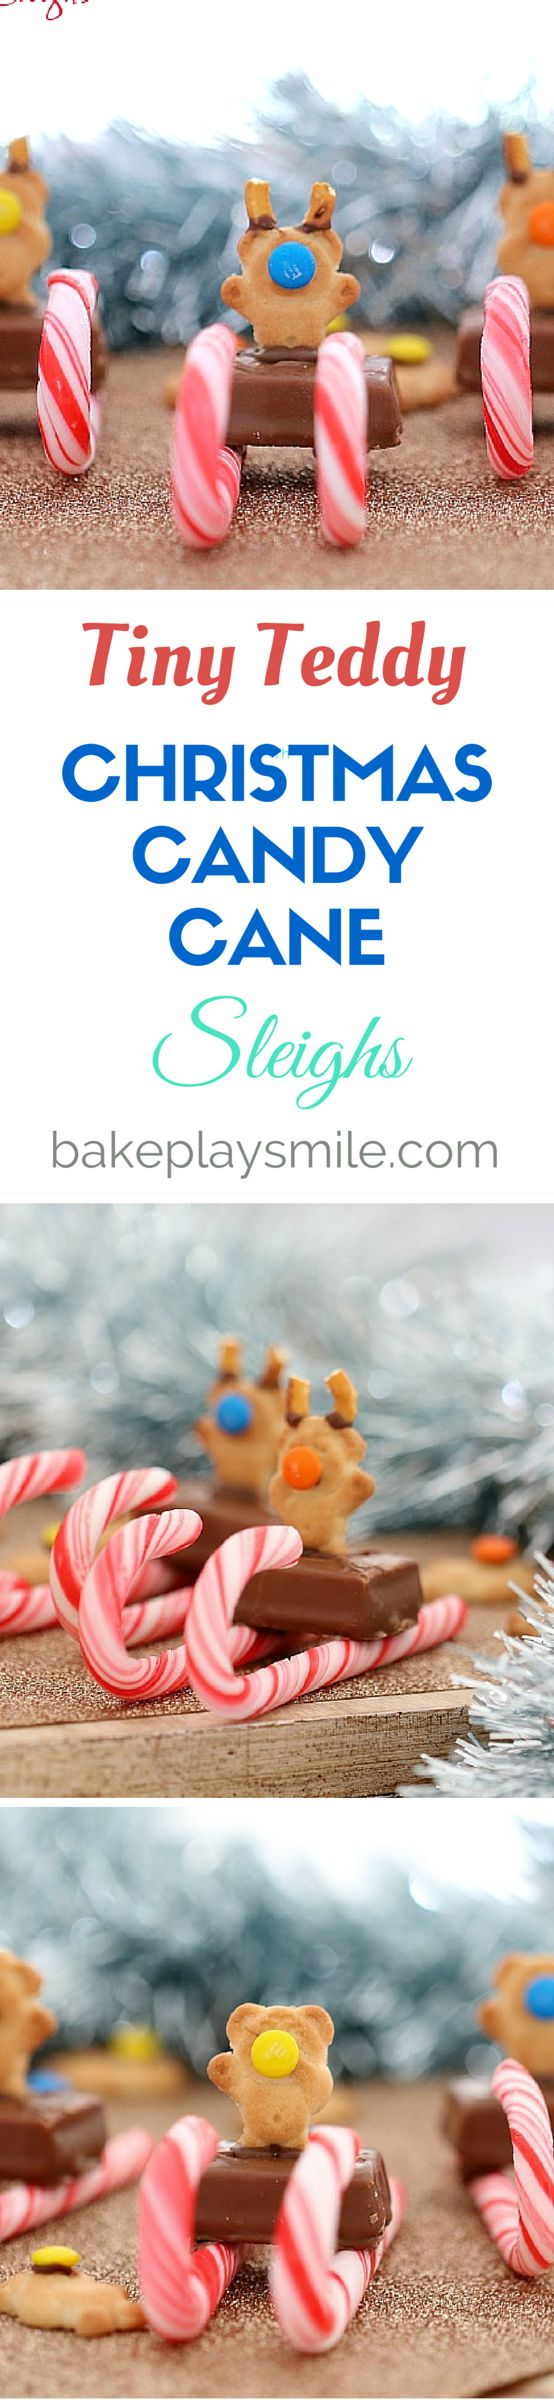 Tiny Teddy Christmas Candy Cane Sleighs are the perfect treat for a Christmas party or sweet little DIY food gifts. Who could resist something so cute! #christmas #kids #nobake #easy #party #food #candy #canes